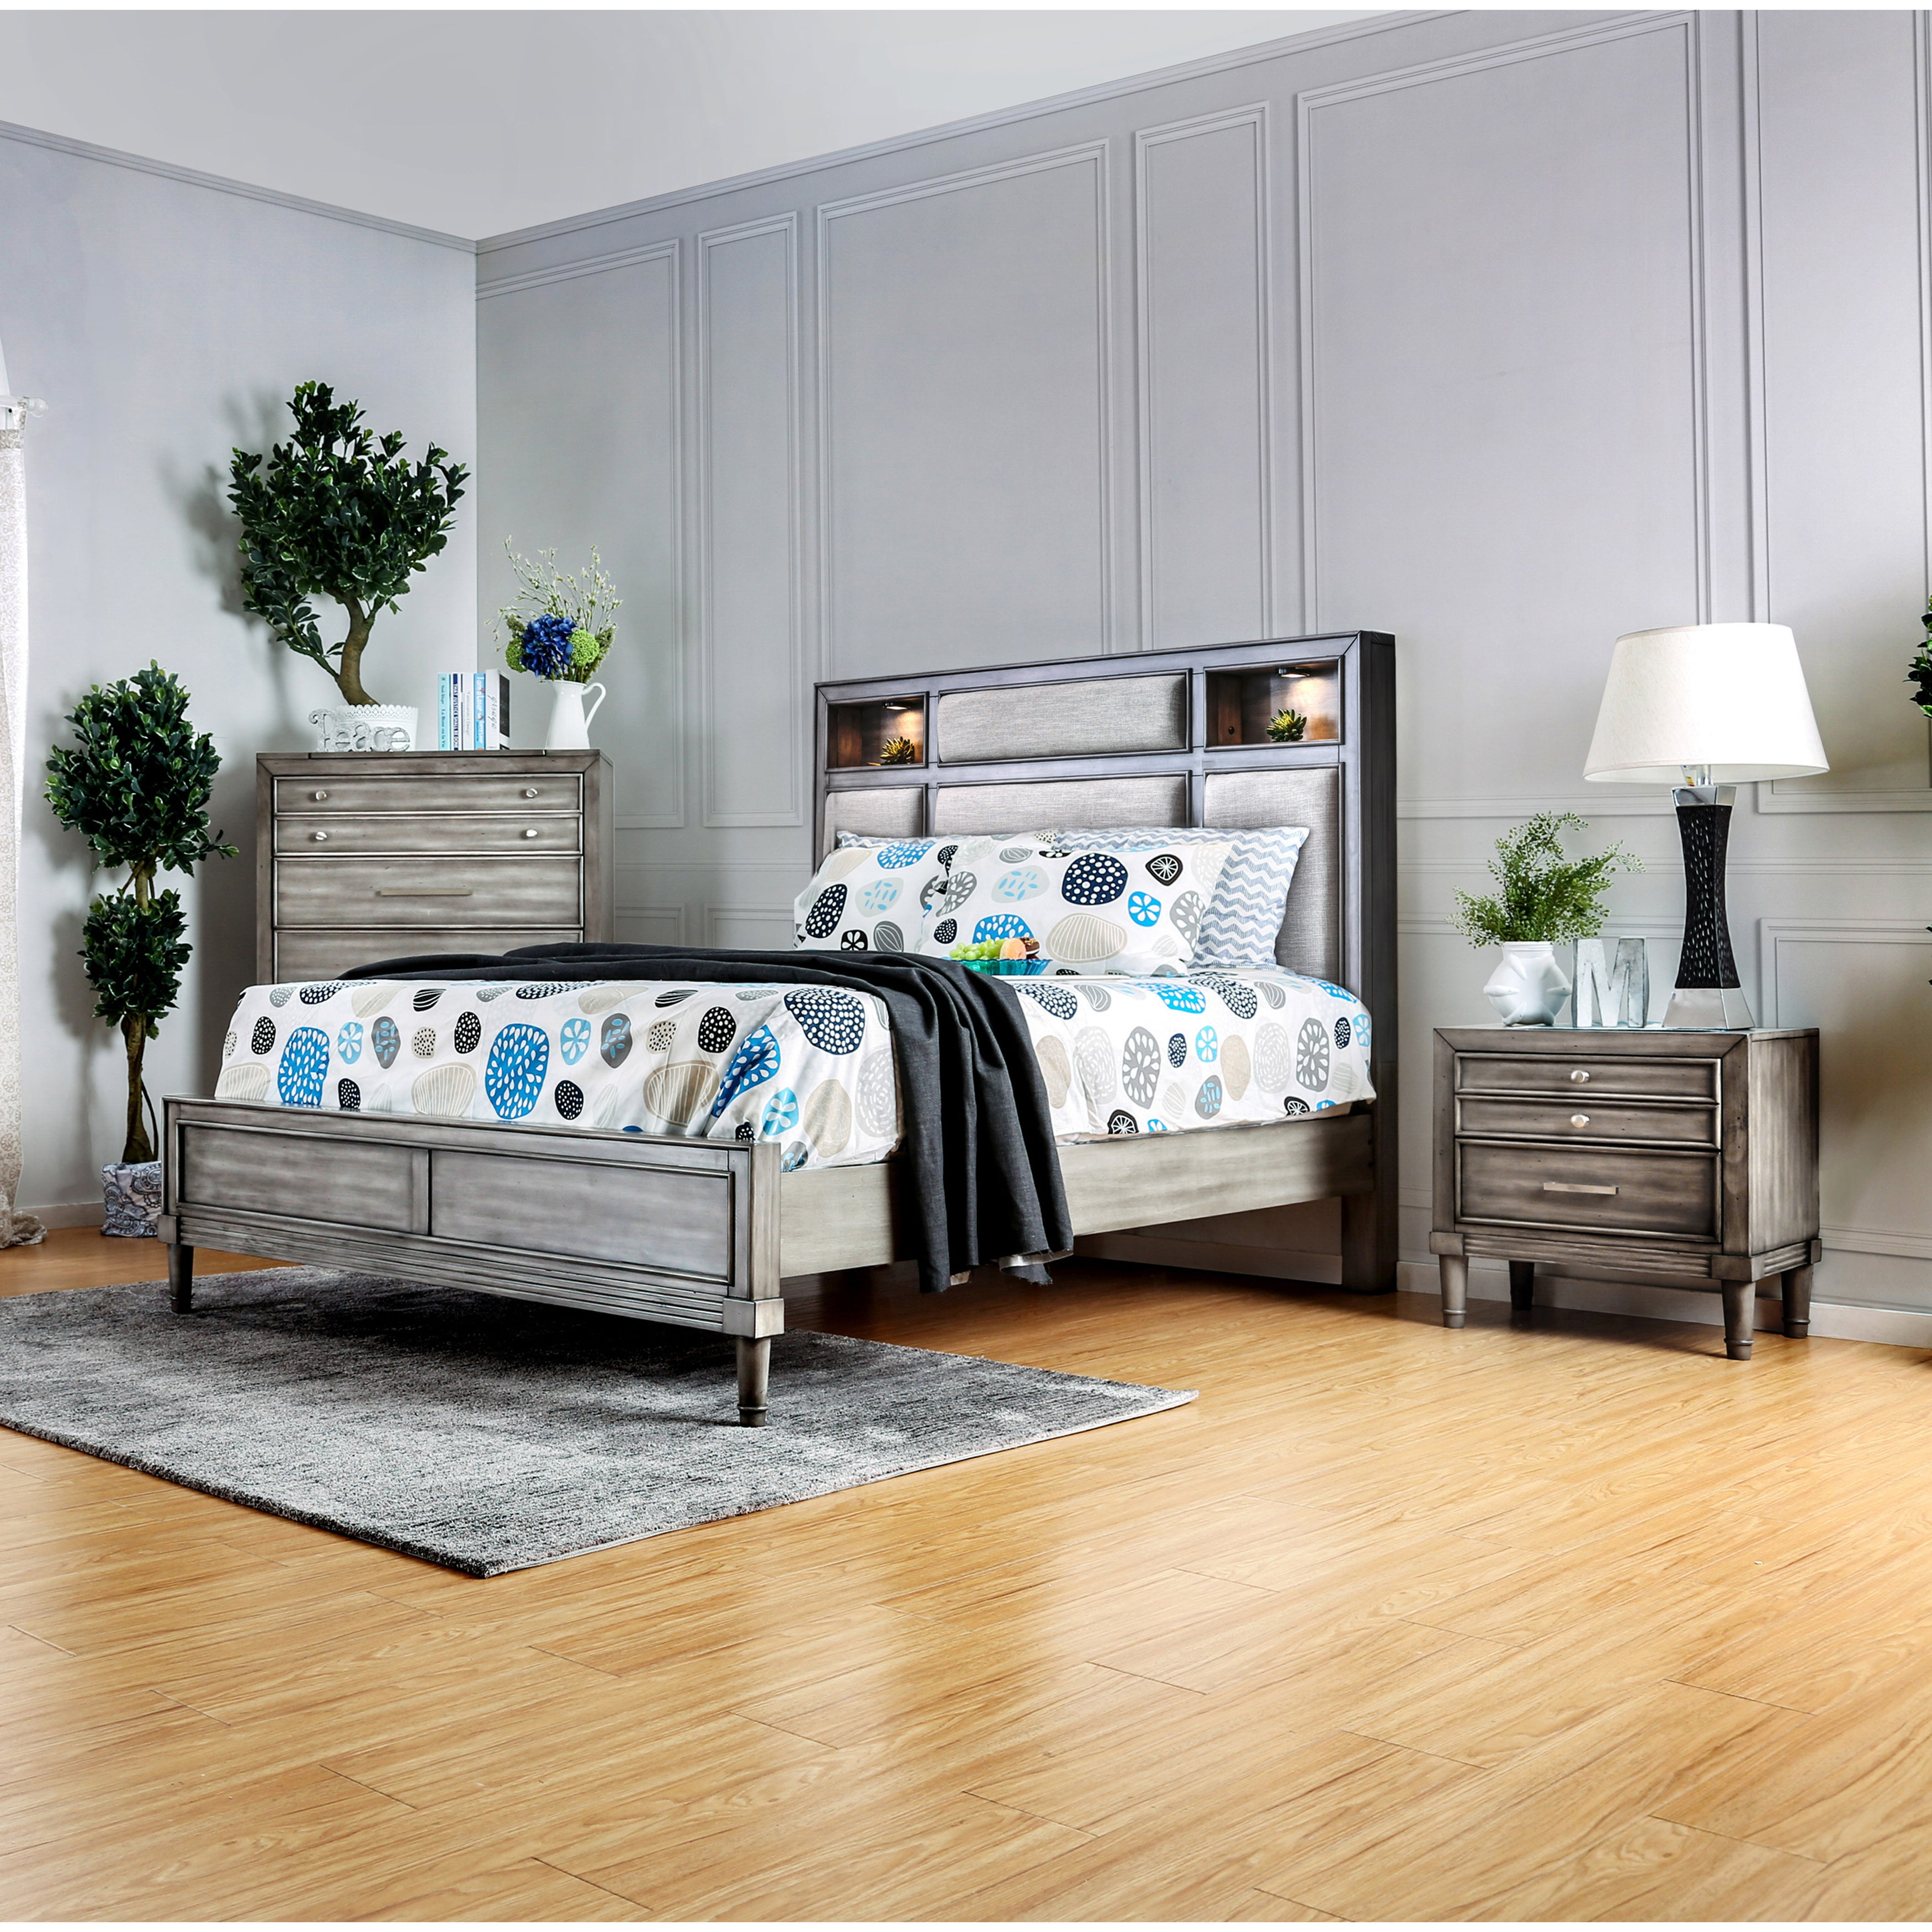 bed design idea with black modern transitional ideas newhomesandrews bedroom com furniture